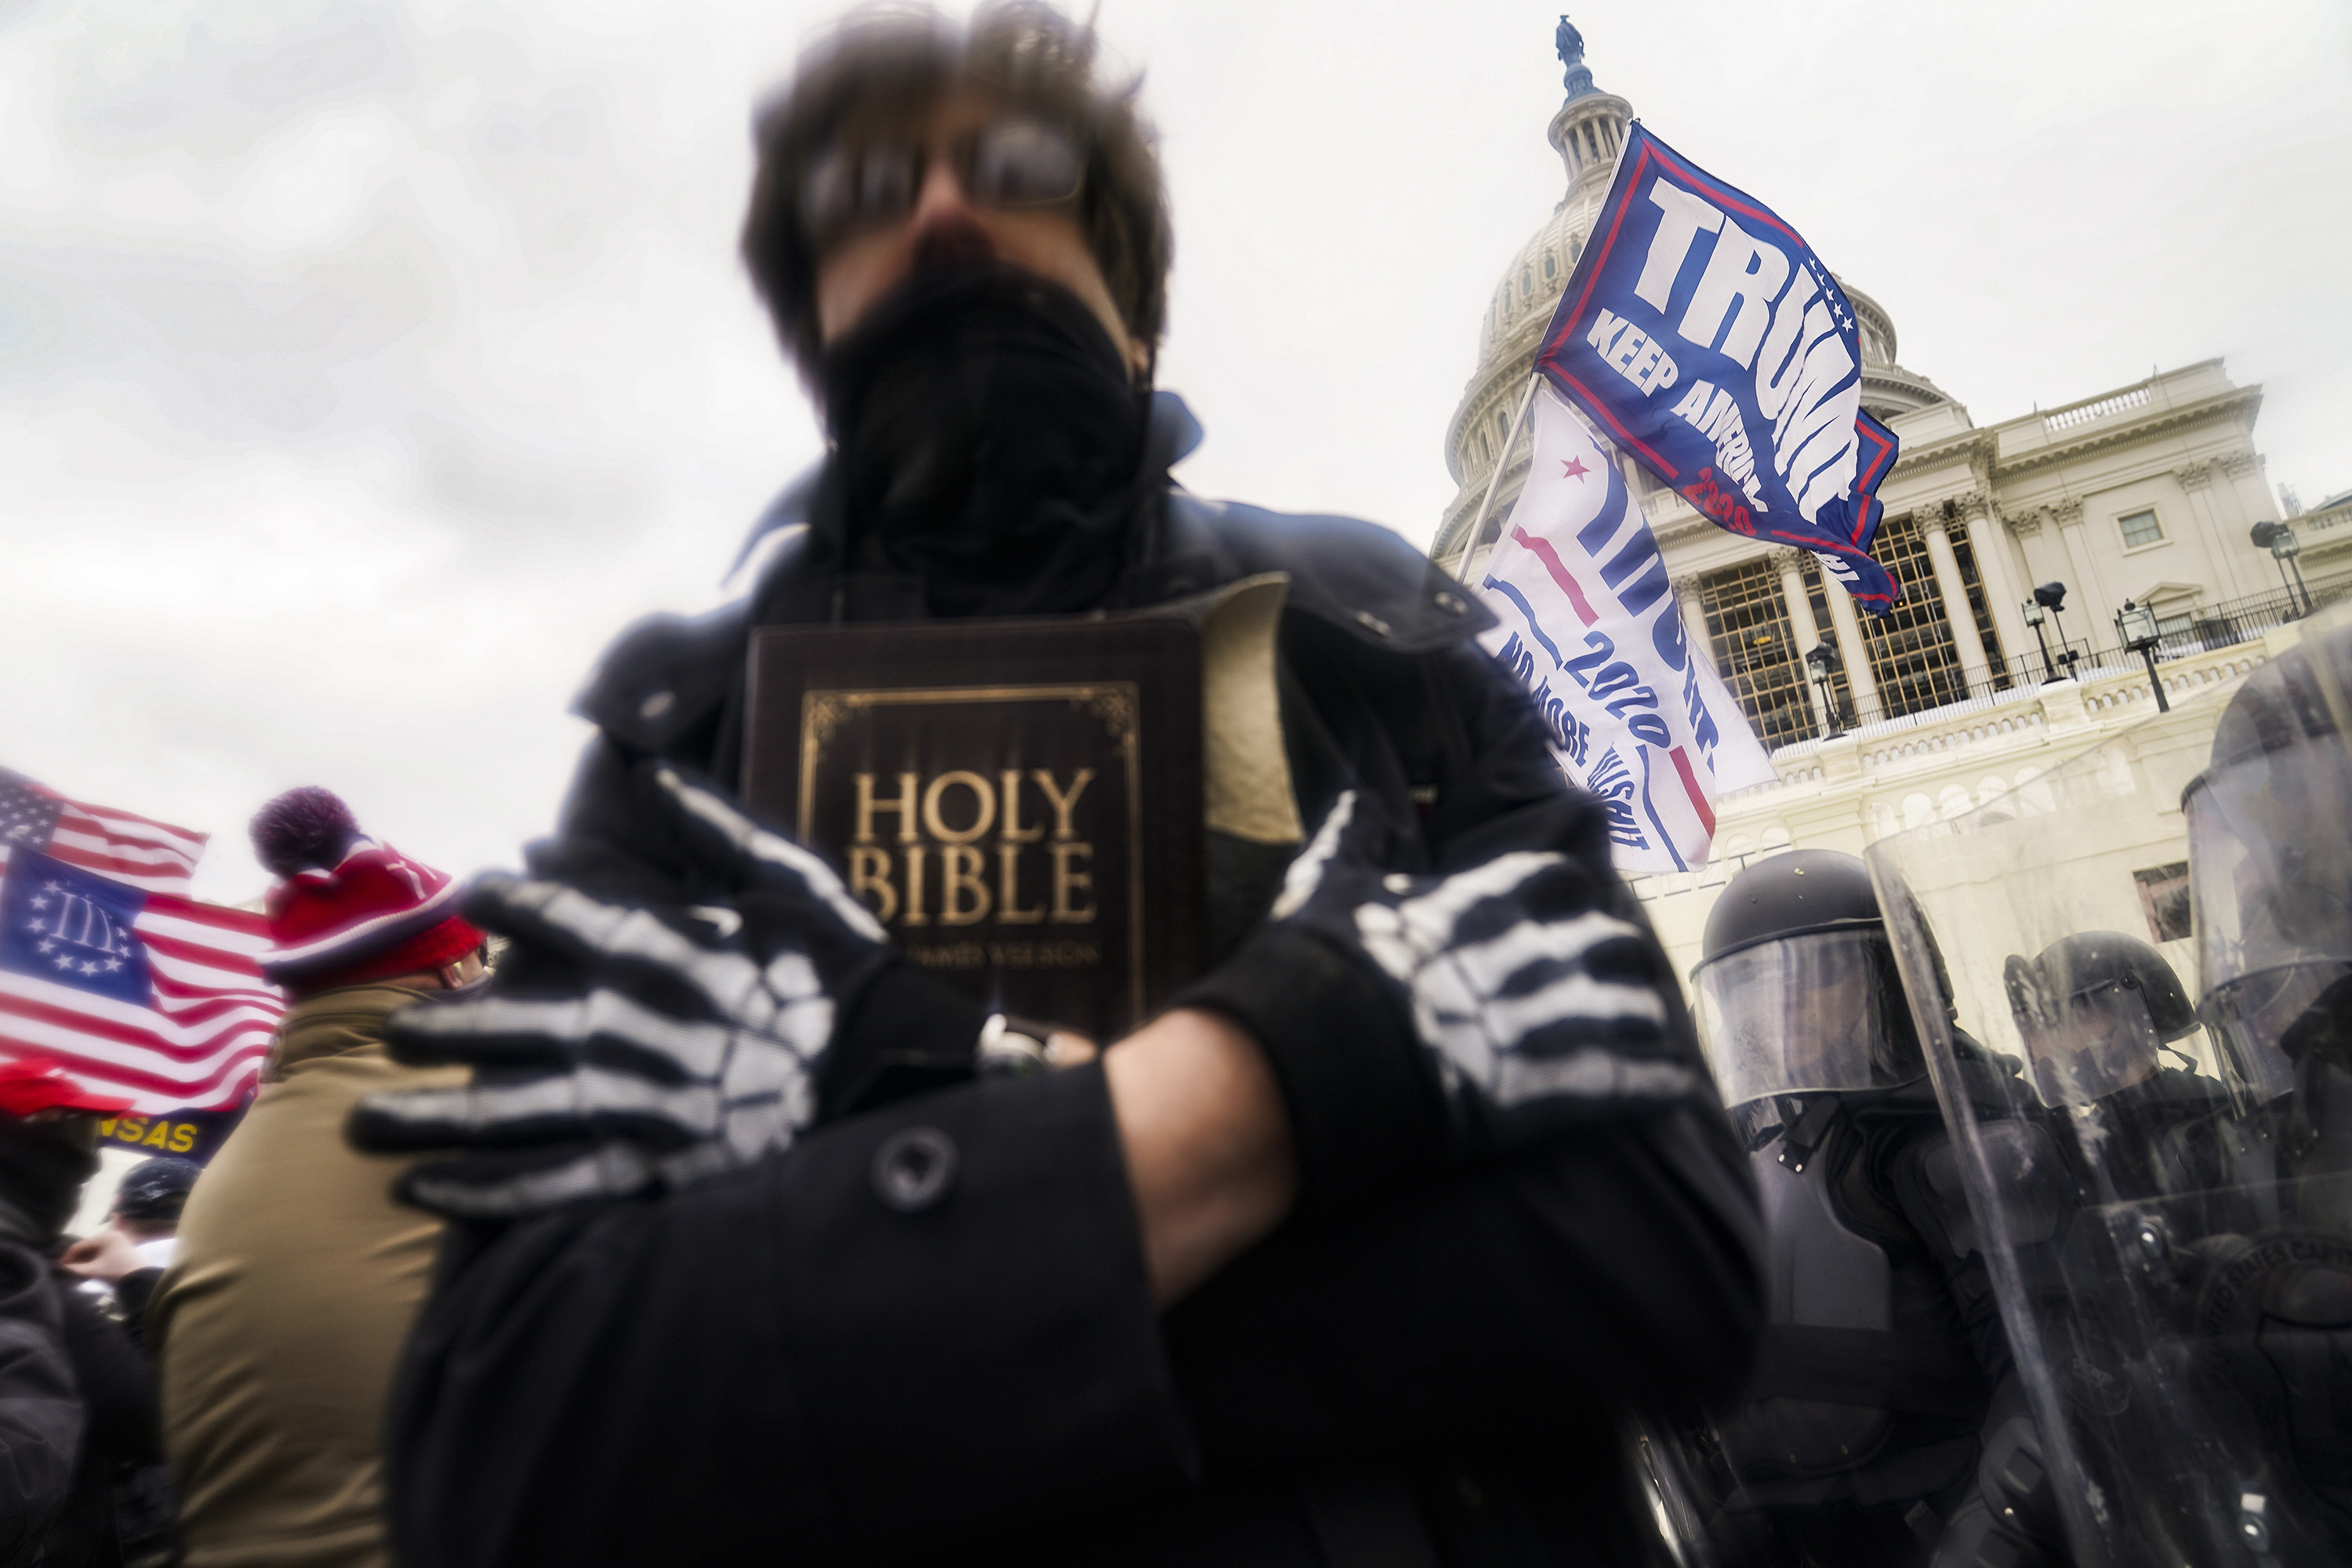 A man clutching a bible during a riot at the Capitol